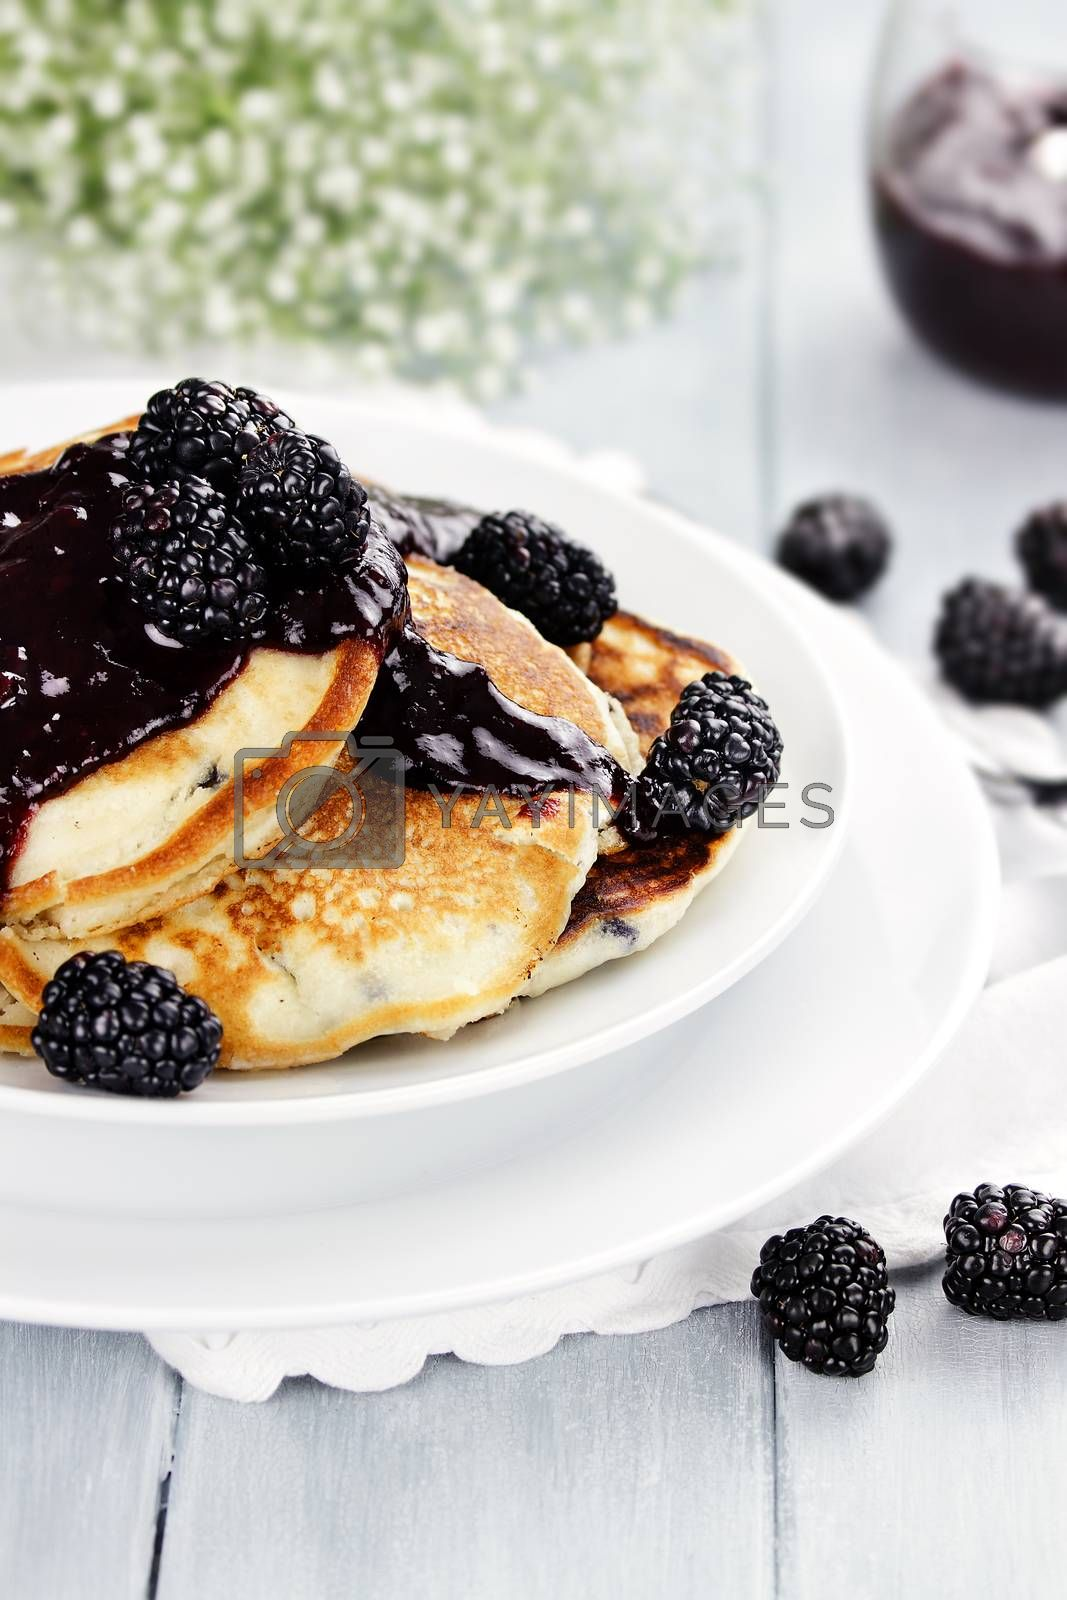 Royalty free image of Pancakes and Fresh Berries by StephanieFrey